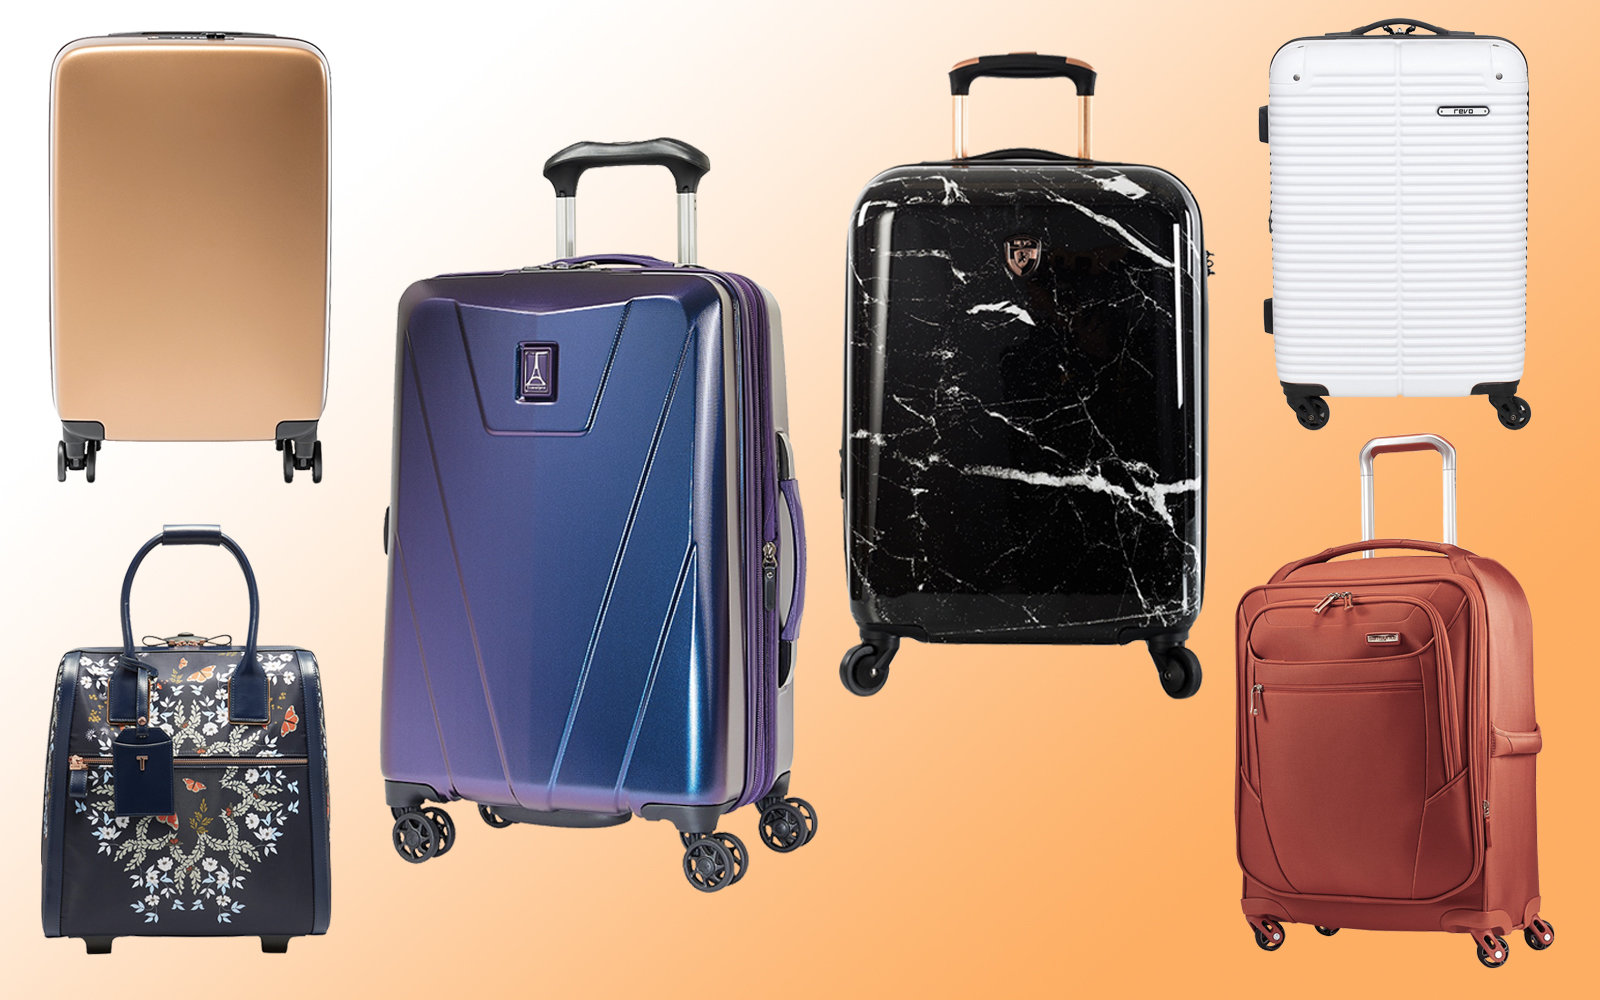 carry-on-luggage-on-sale-PRESDAYCARRYON0218.jpg